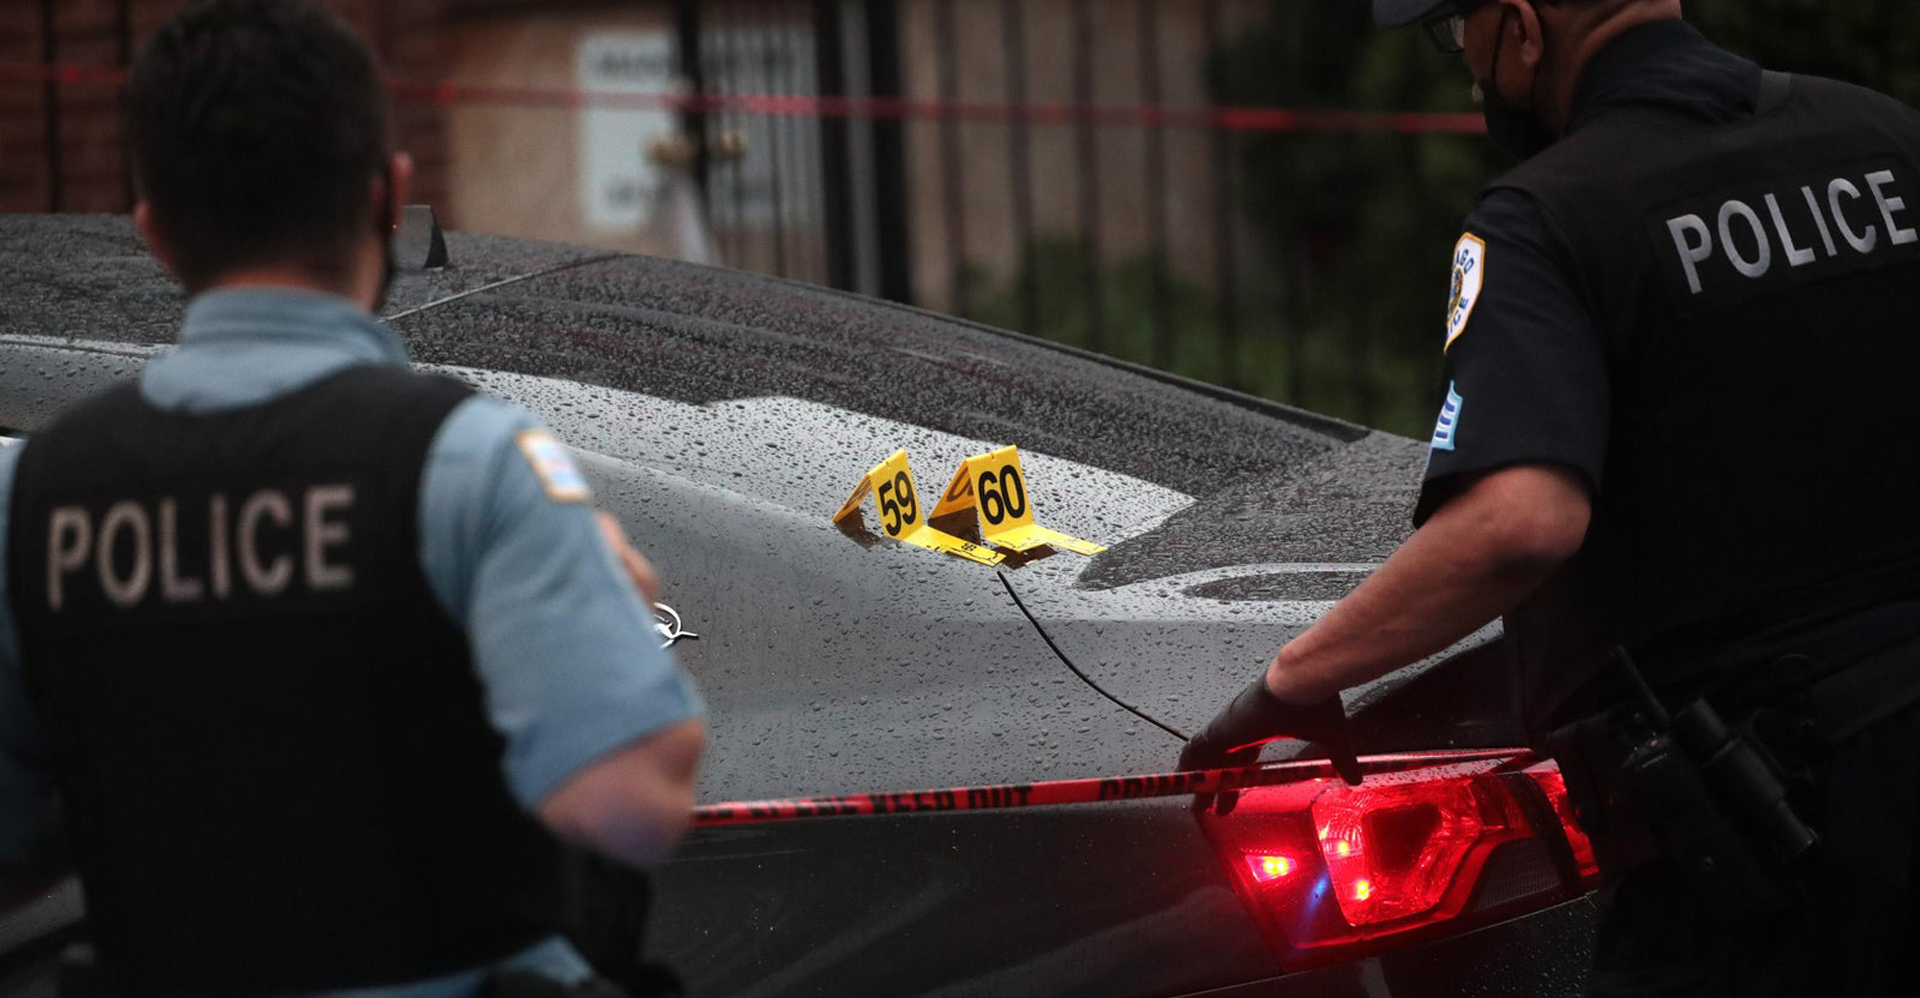 A crime scene analysis in Chicago. Scott Olson/Getty Images (From Slate.com)